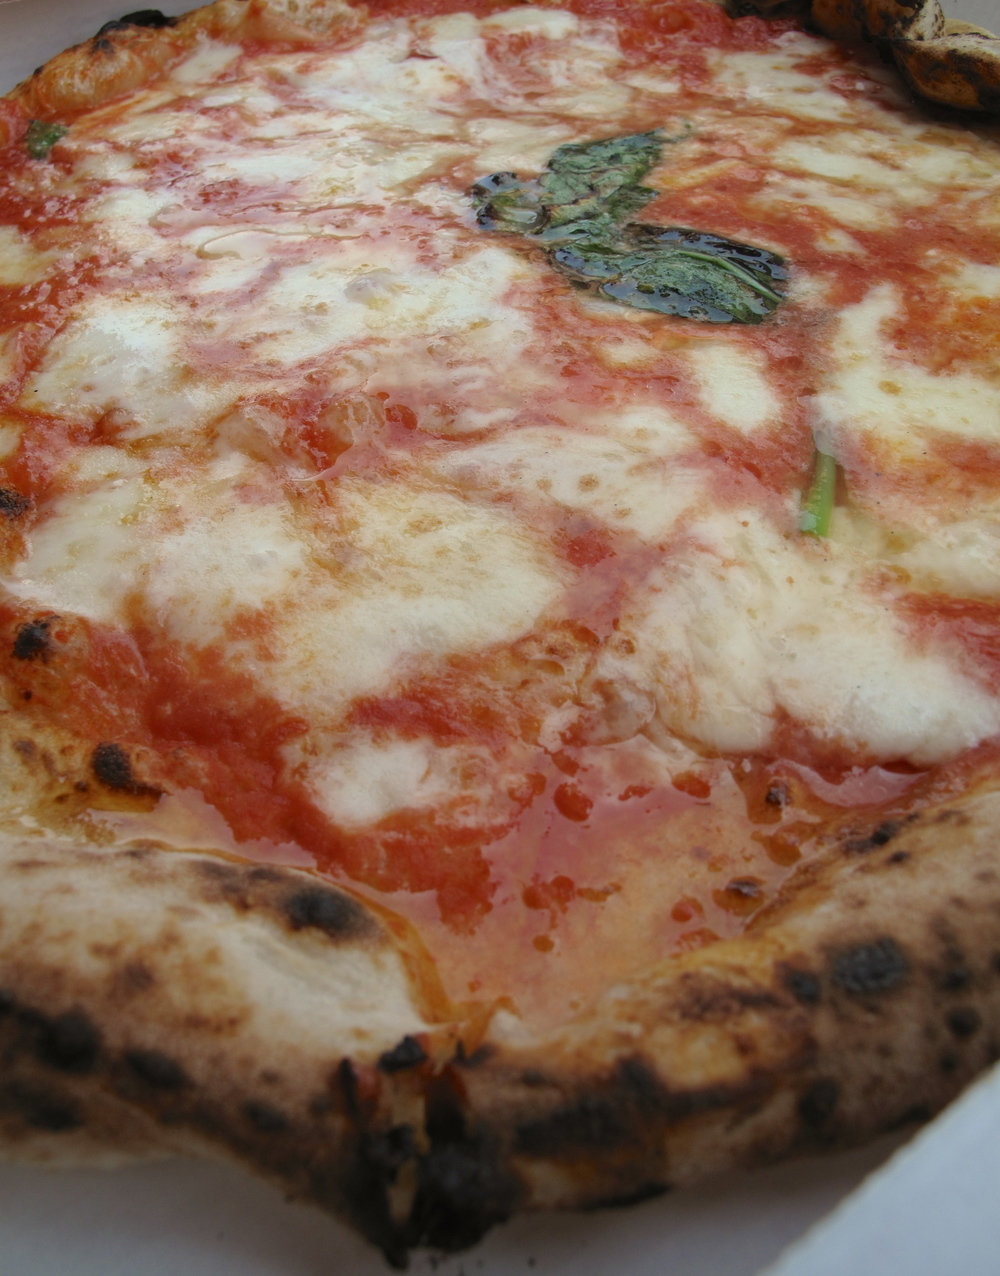 Pizza from L'Antica Pizzeria da Michele